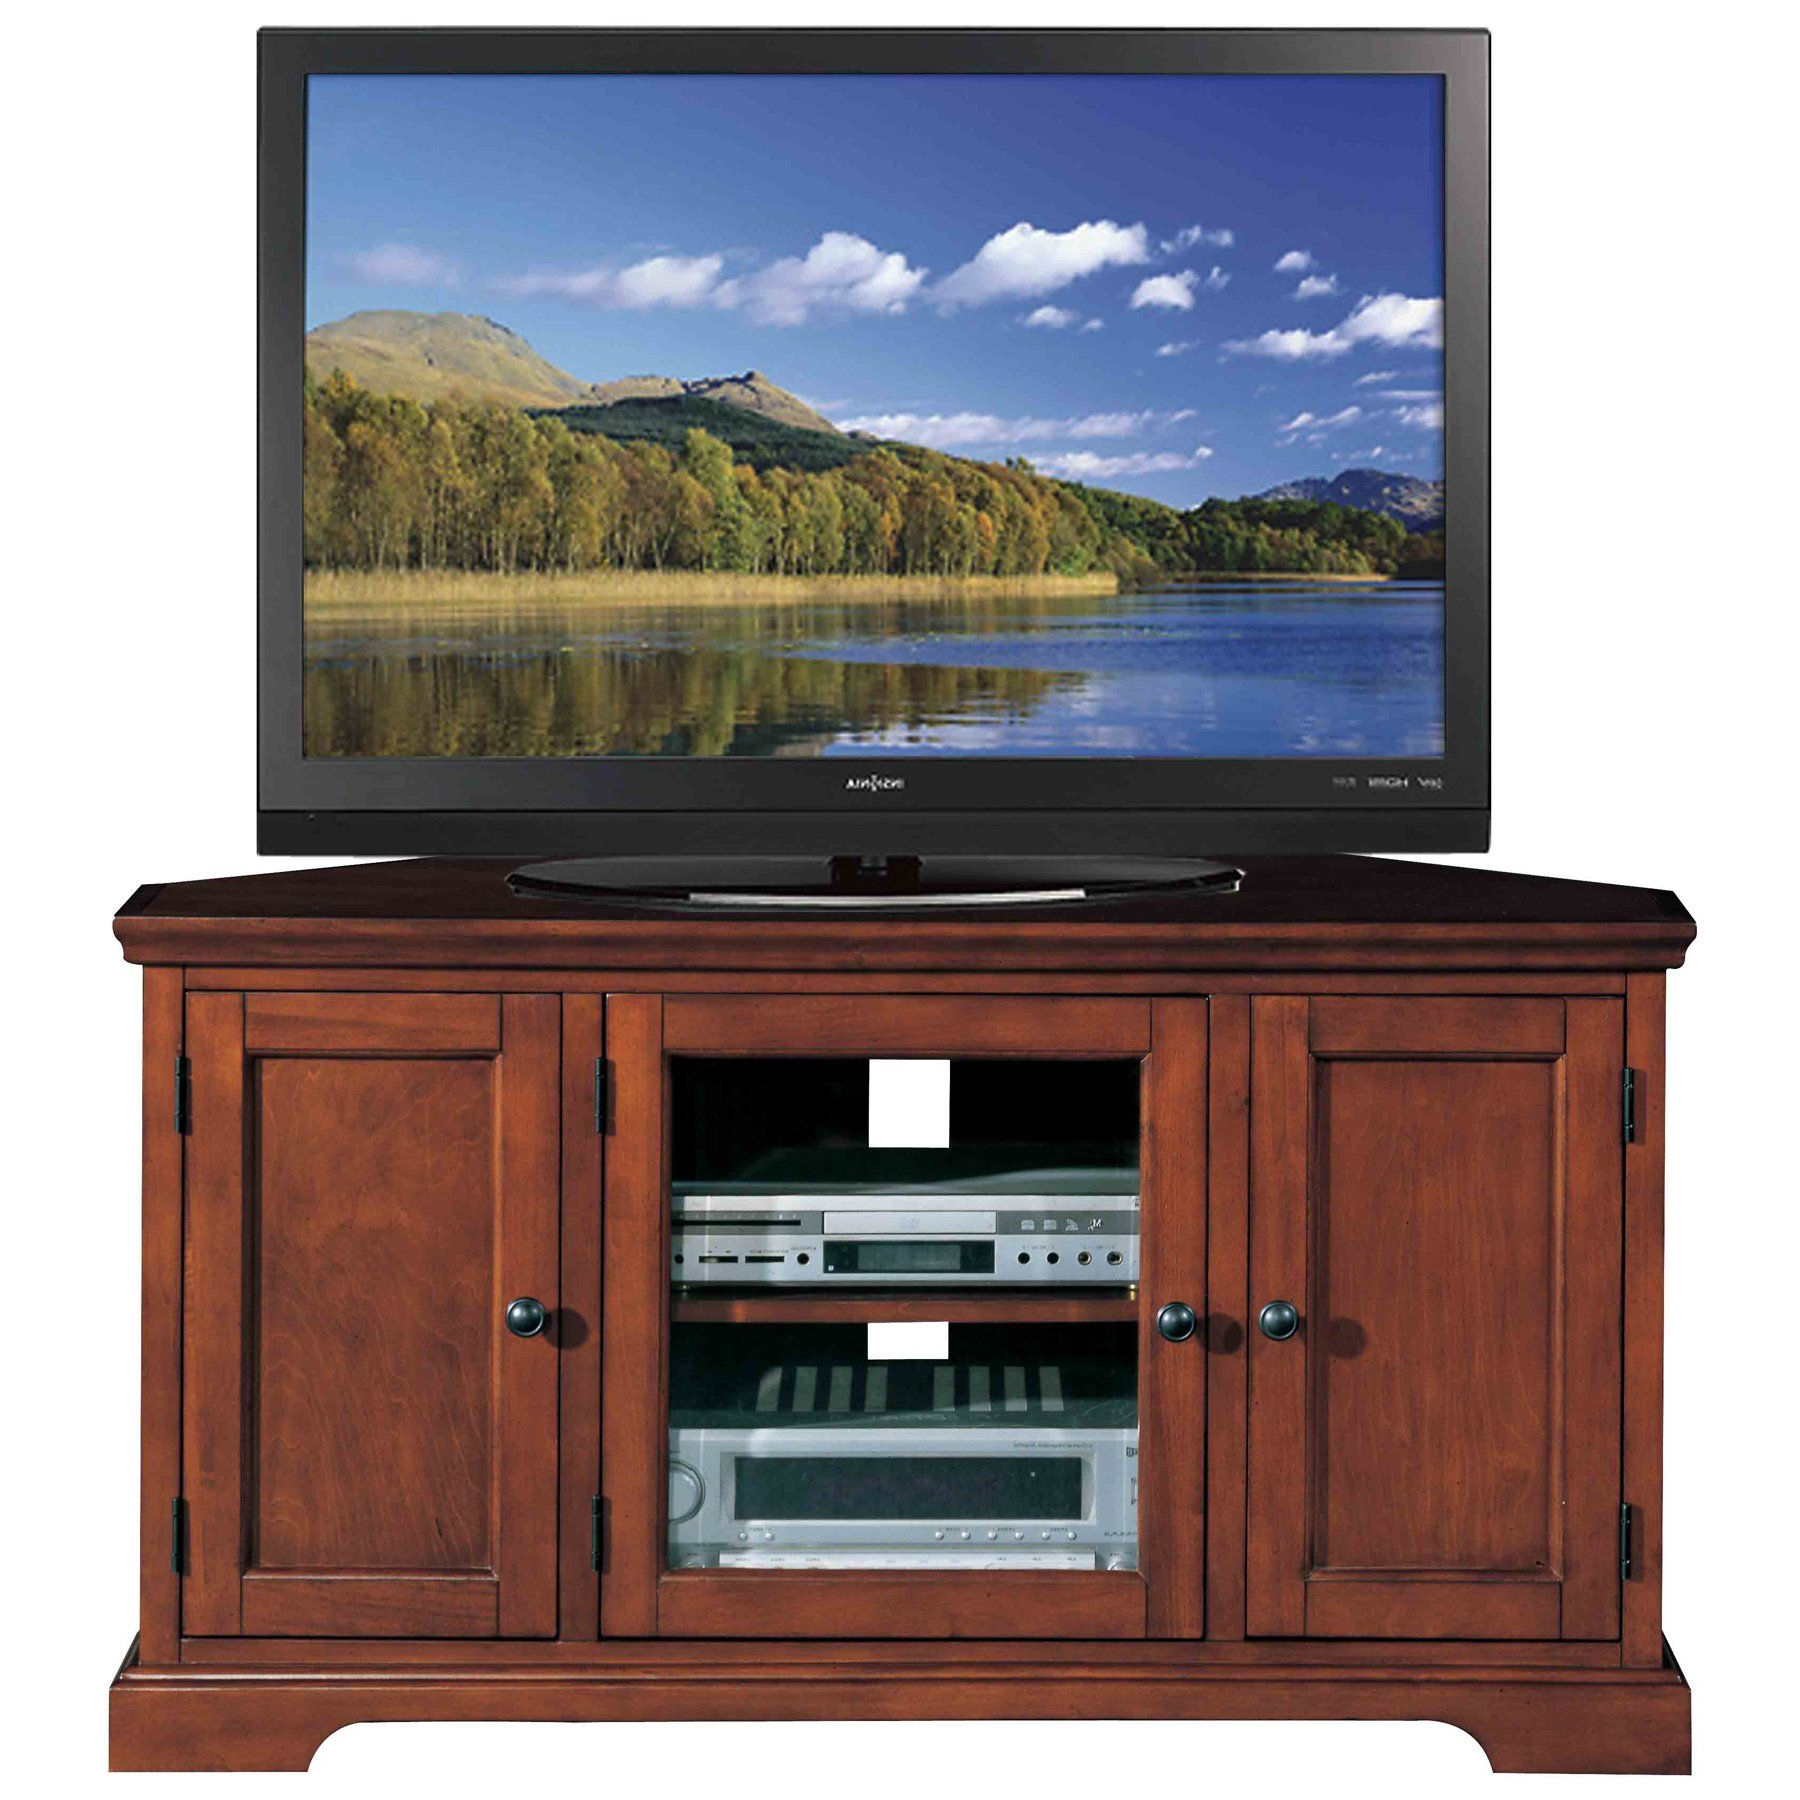 Widely Used Corner Tv Stands For 46 Inch Flat Screen Regarding Leick Riley Holliday Westwood Corner Tv Stand With Storage, 46 Inch (View 9 of 20)